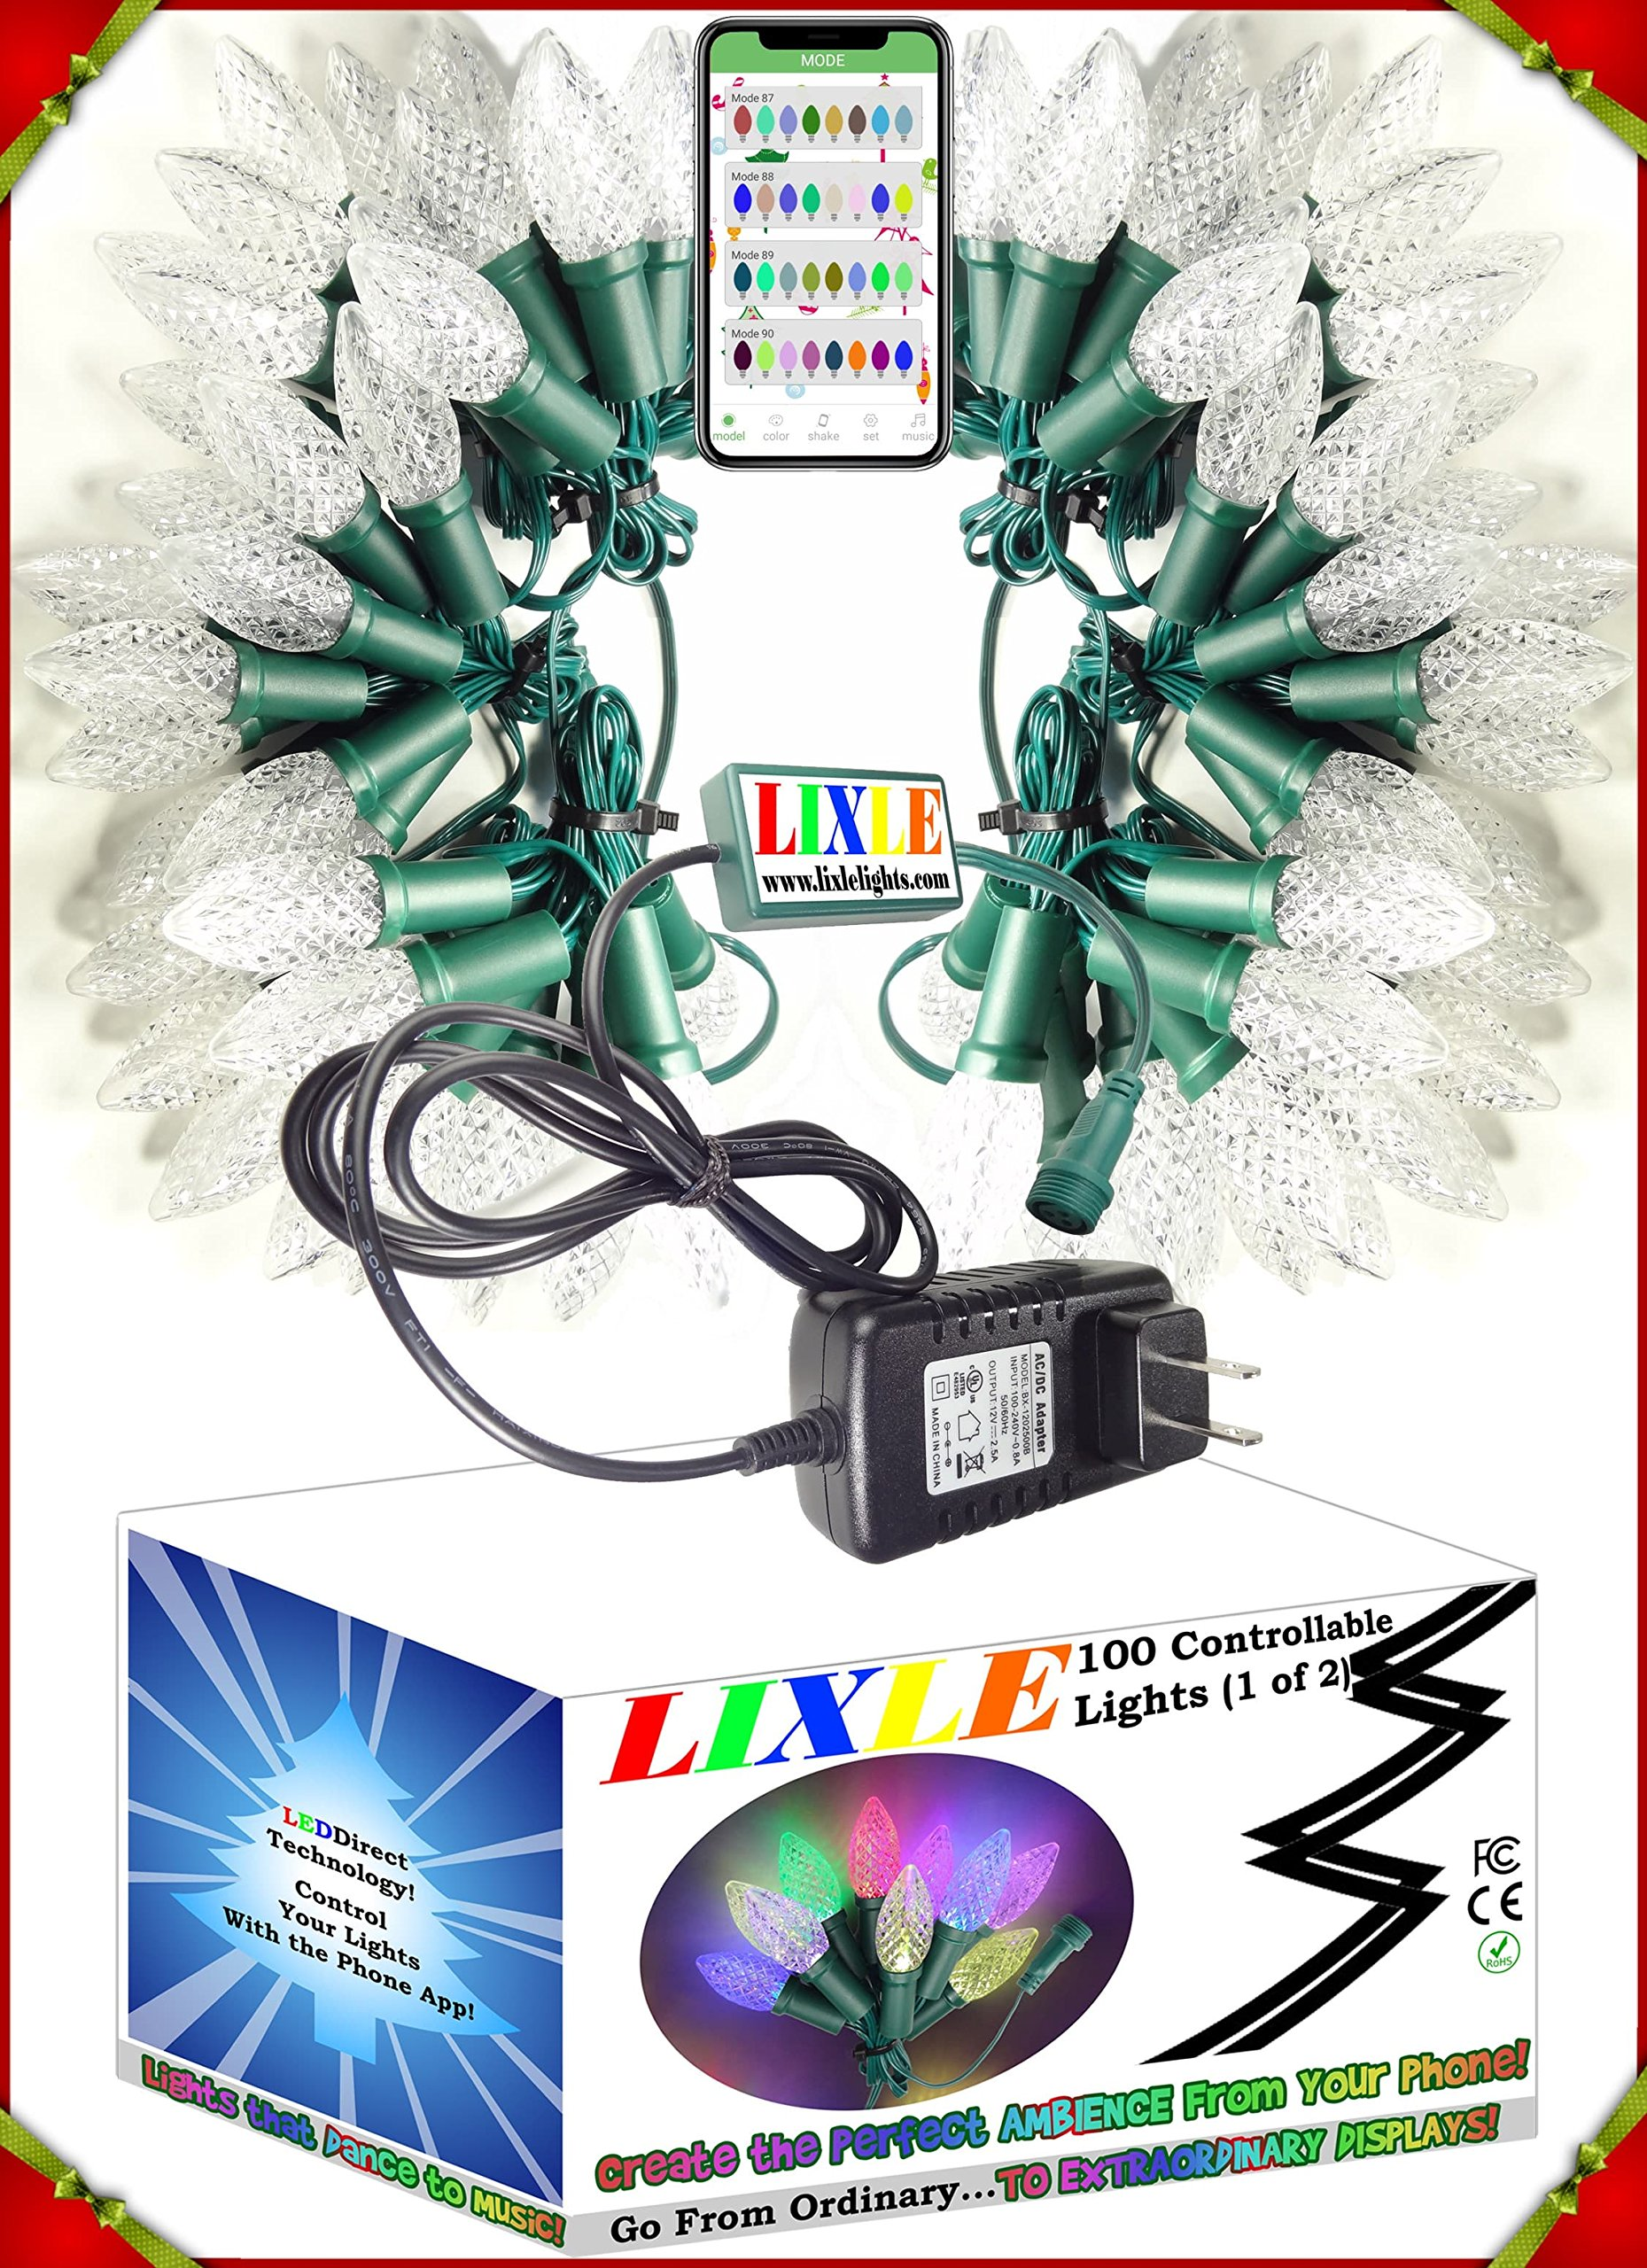 LIXLE PERFECT HOLIDAYS! 100 Christmas LED Lights String For Any MOOD or ROOM! EASY CONTROL by Your Phone With OVER 100 SETTINGS! LONG LASTING with LEDDIRECT Technology for Patio, Tree, or Bedroom!